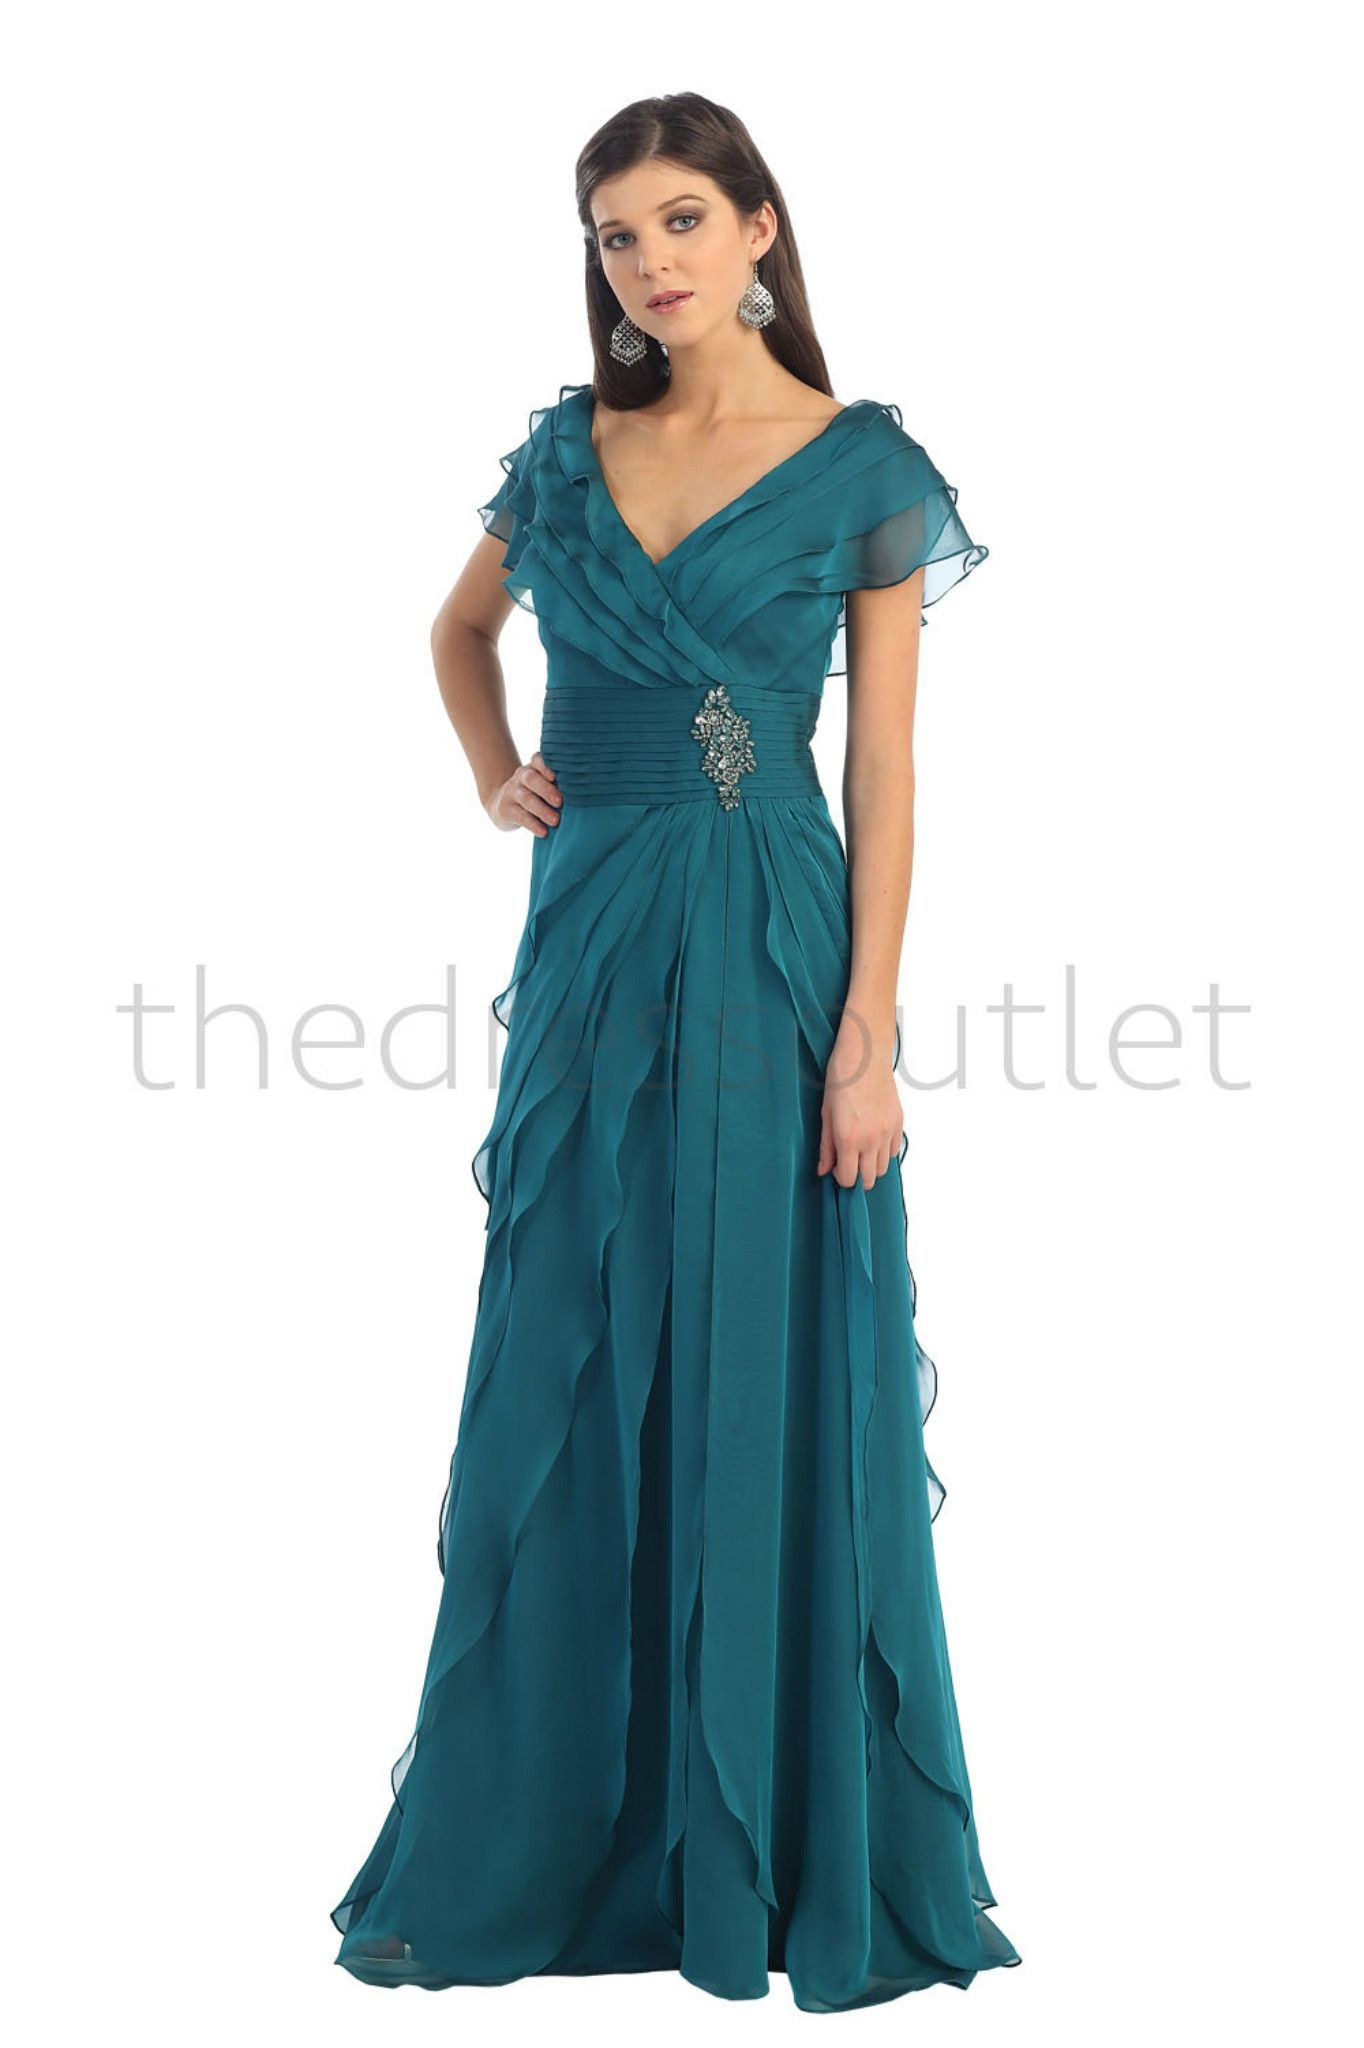 Modest Elegant Long Teal Mother of the Bride Dress Plus Size Formal ...